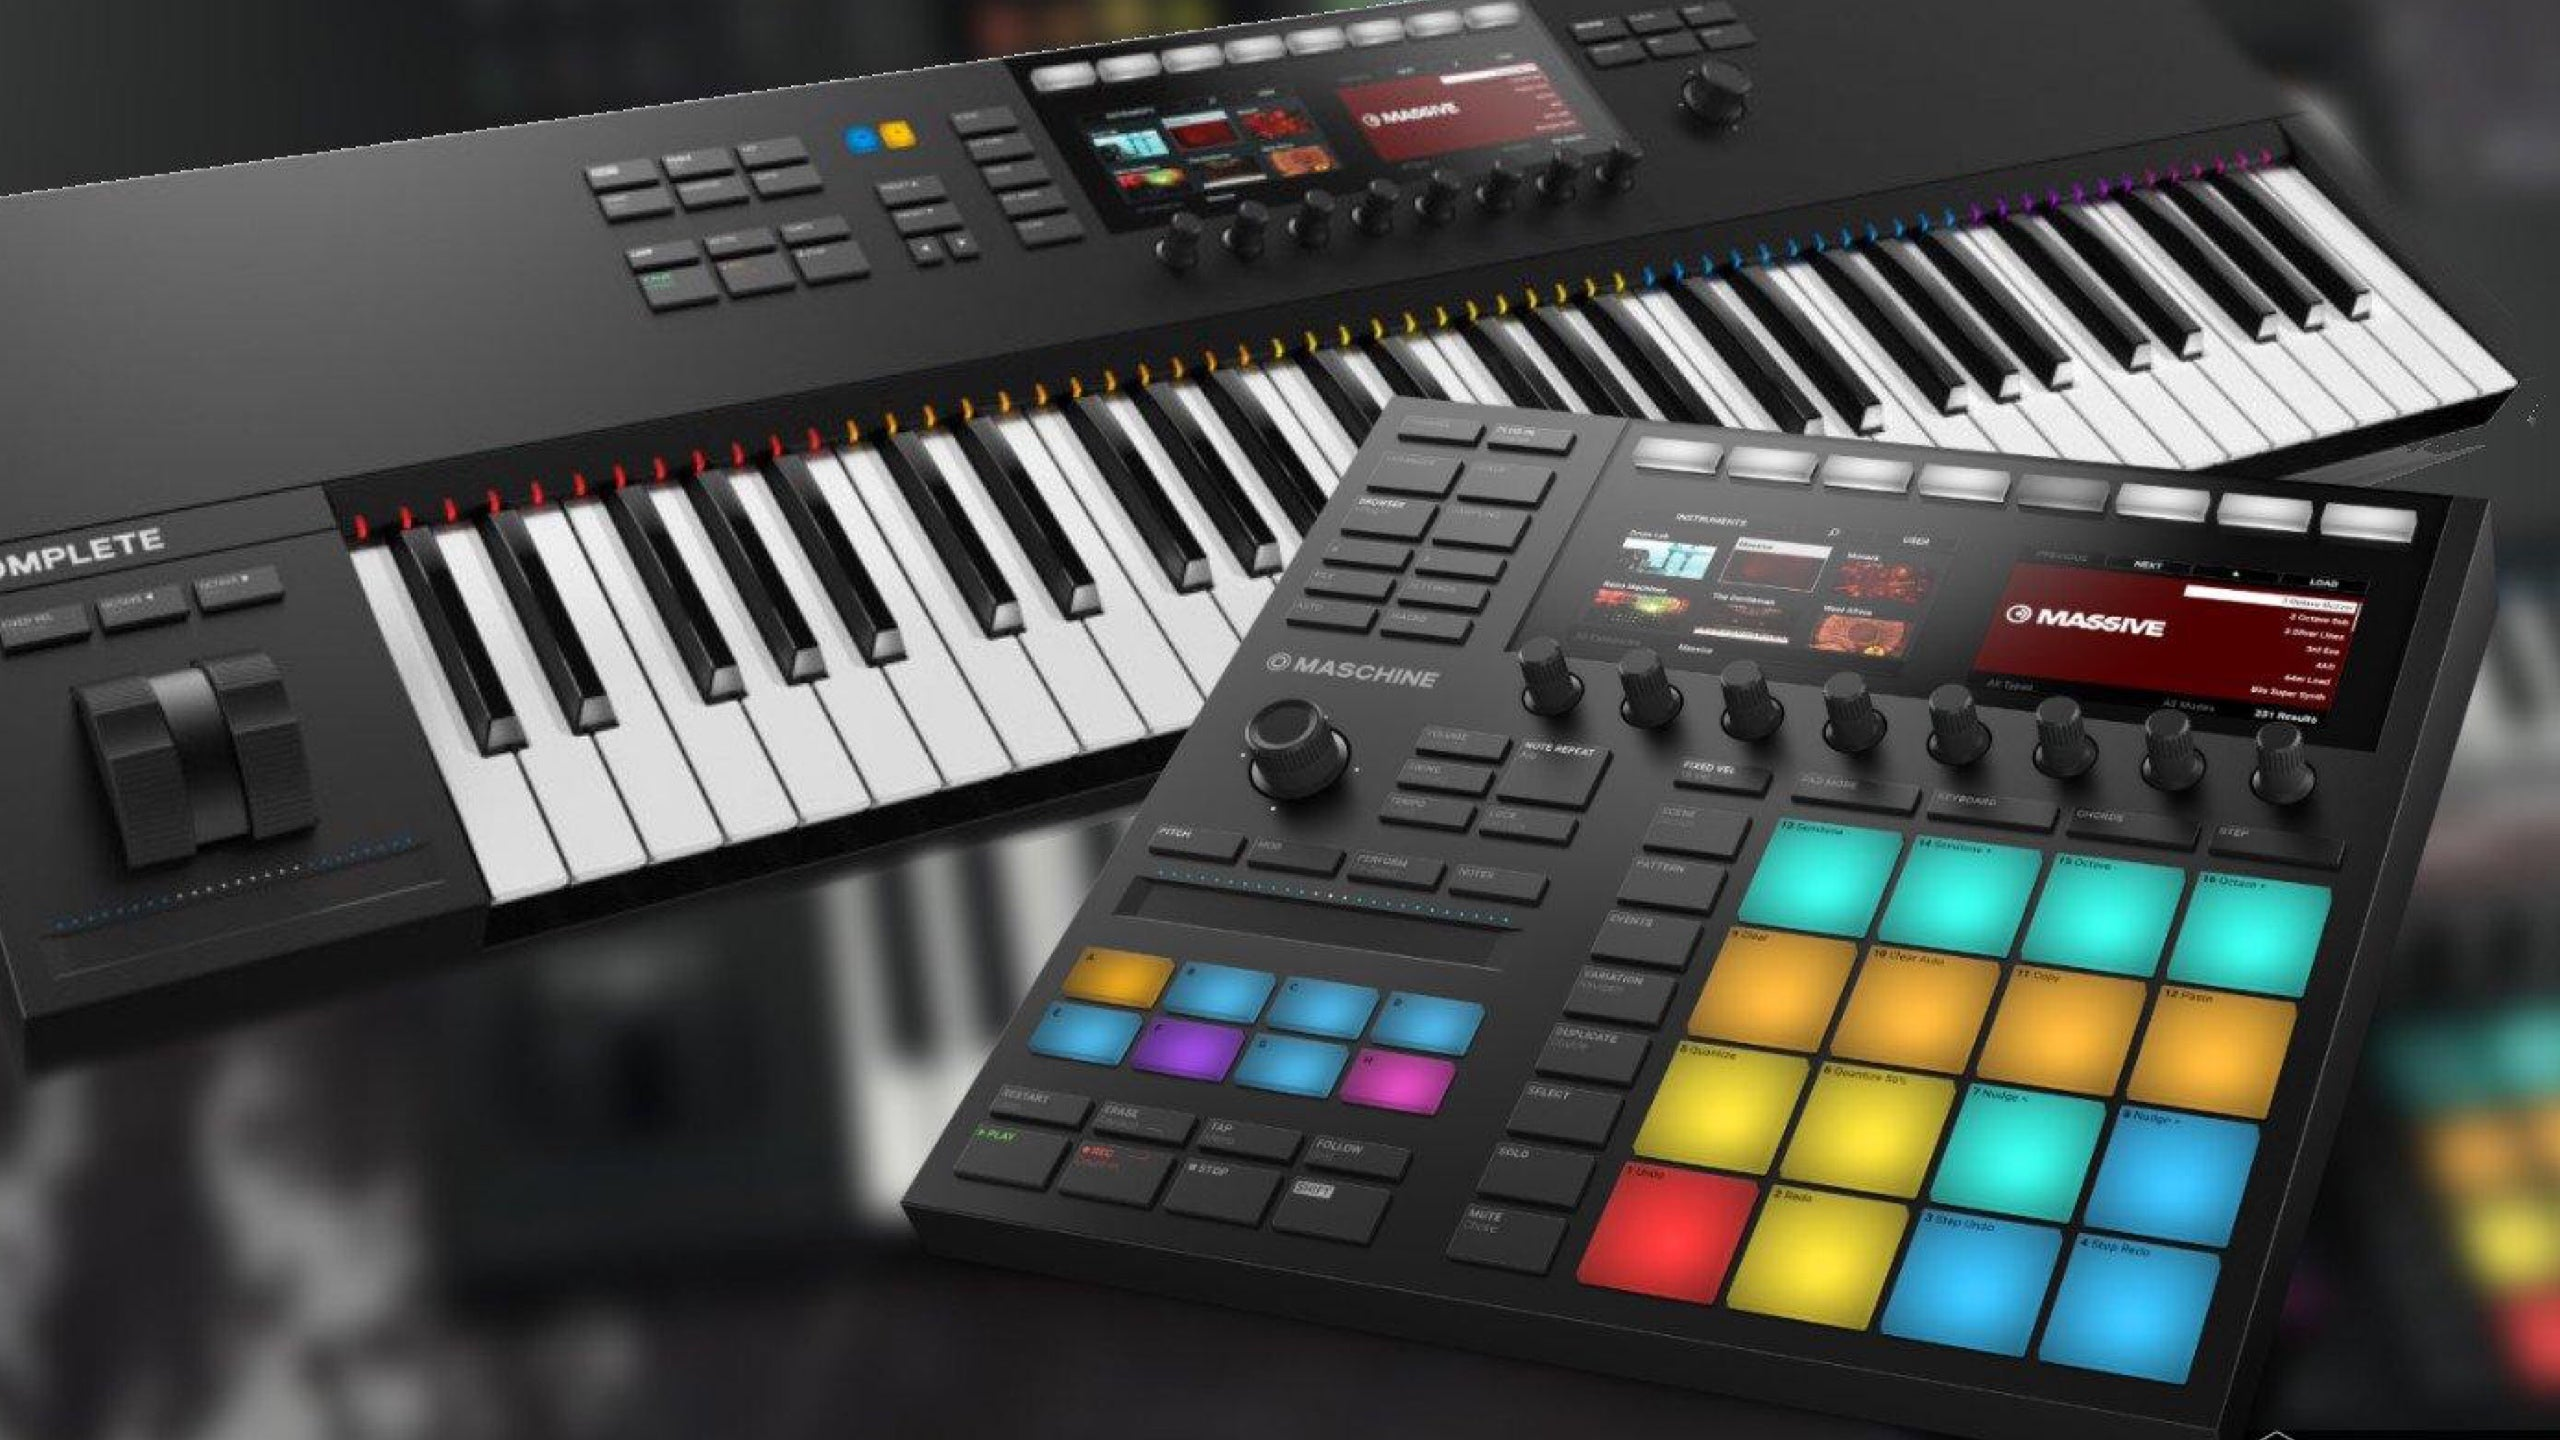 Native Instruments Announce 2 New Products - Maschine Mk3 and Komplete Kontrol MK2